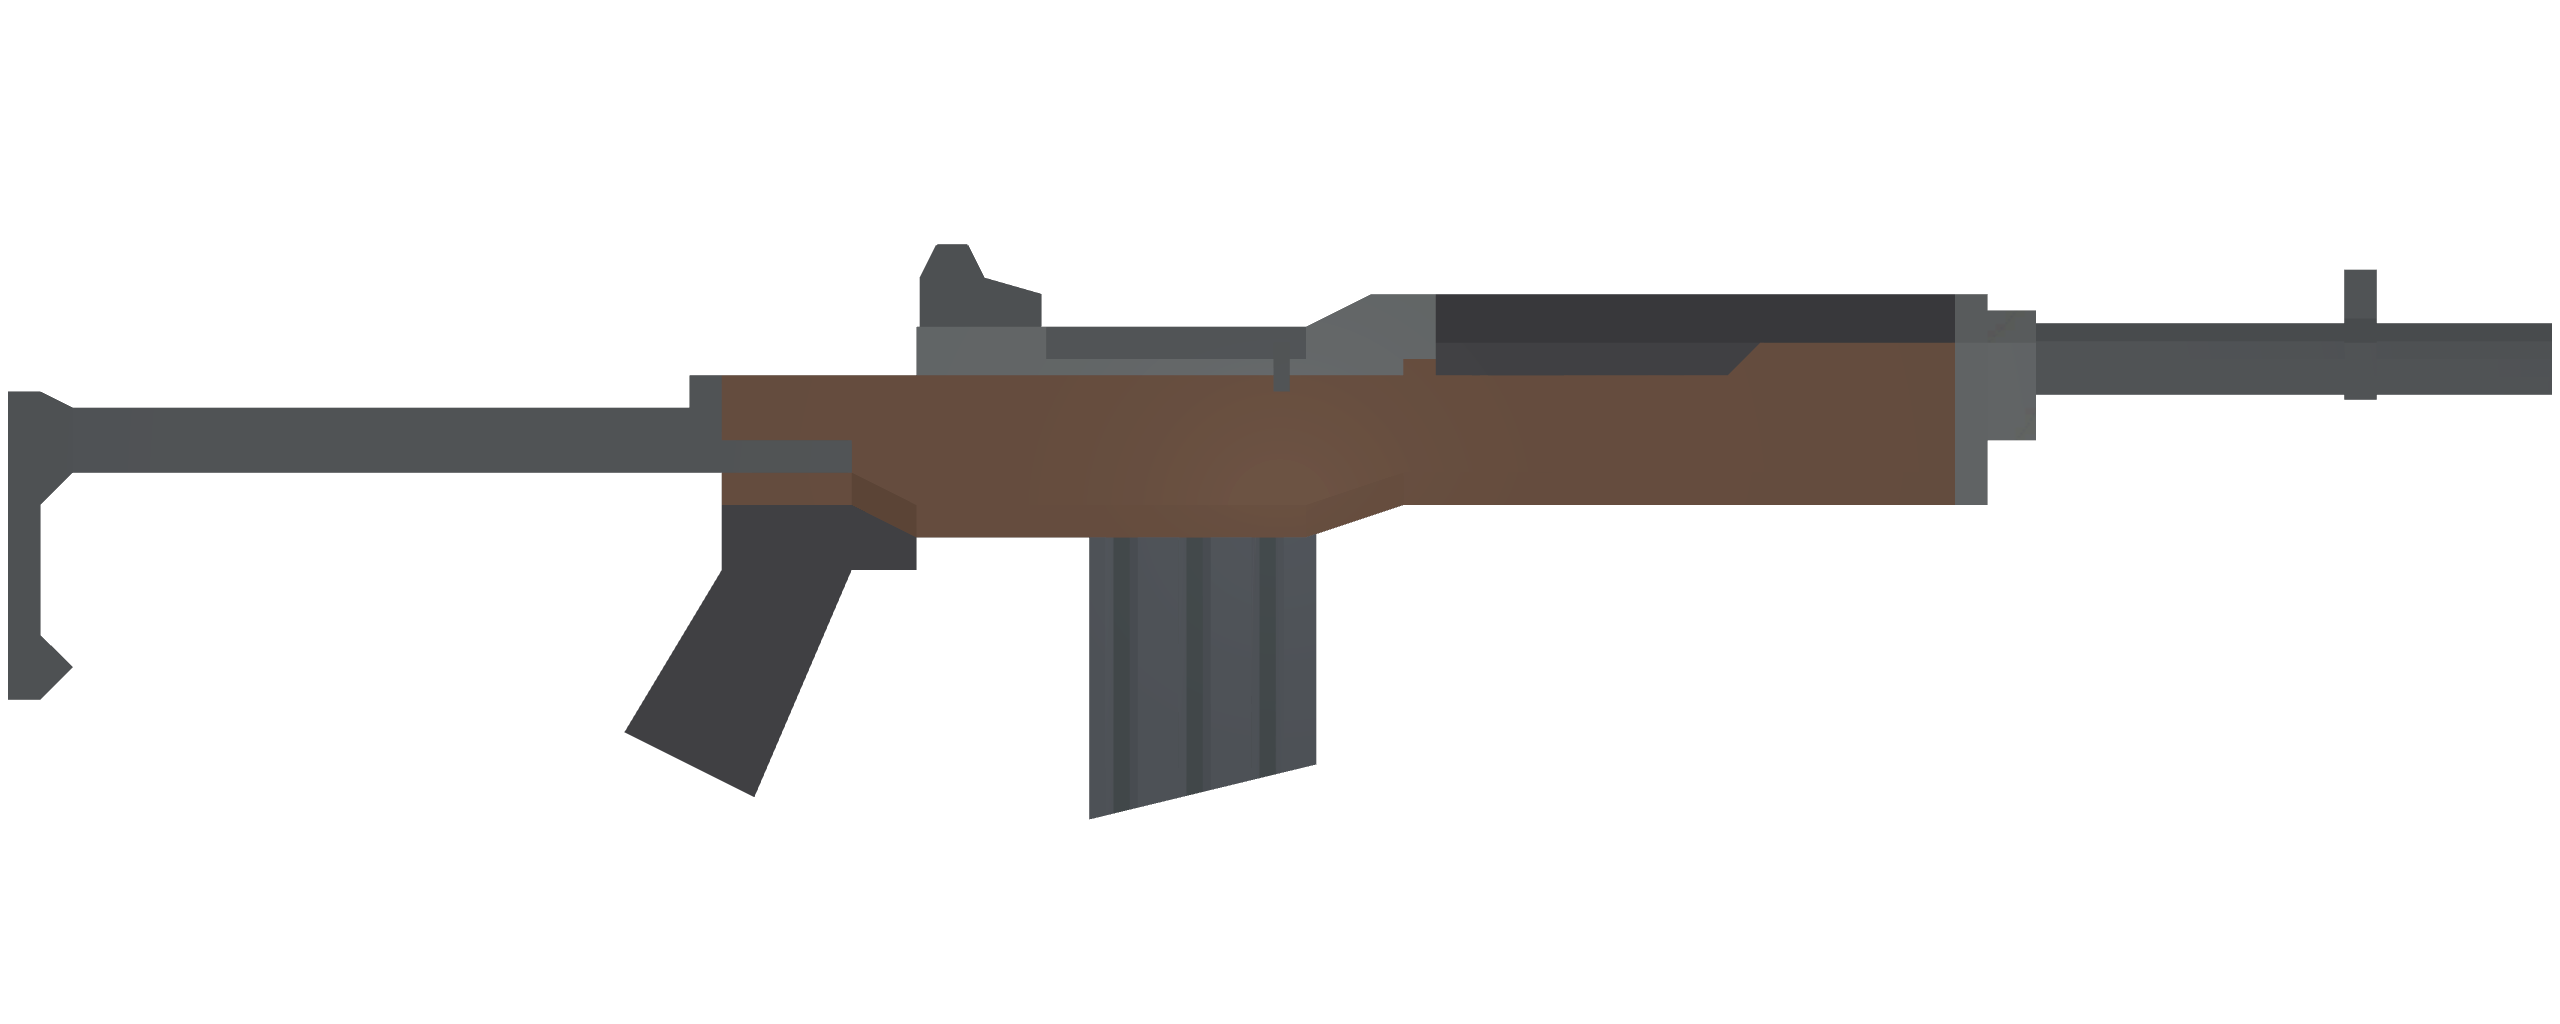 Unturned Uncreated Warfare Mods & All ID List + Attachments - Neutral Weapons - 37EEC91